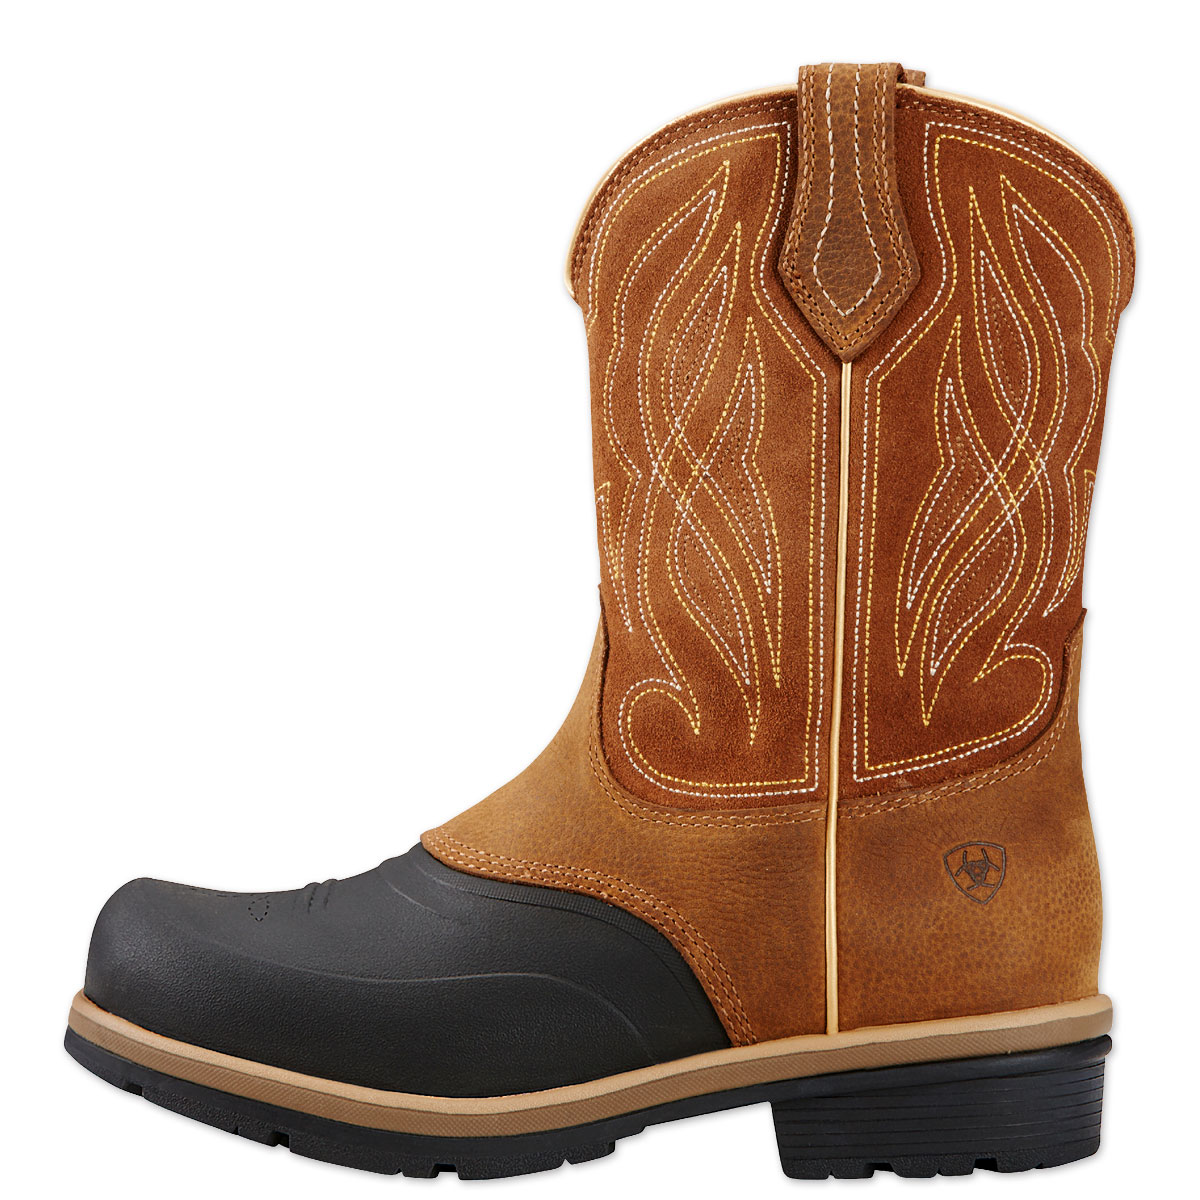 Ariat Women's H20 Whirlwind Boots